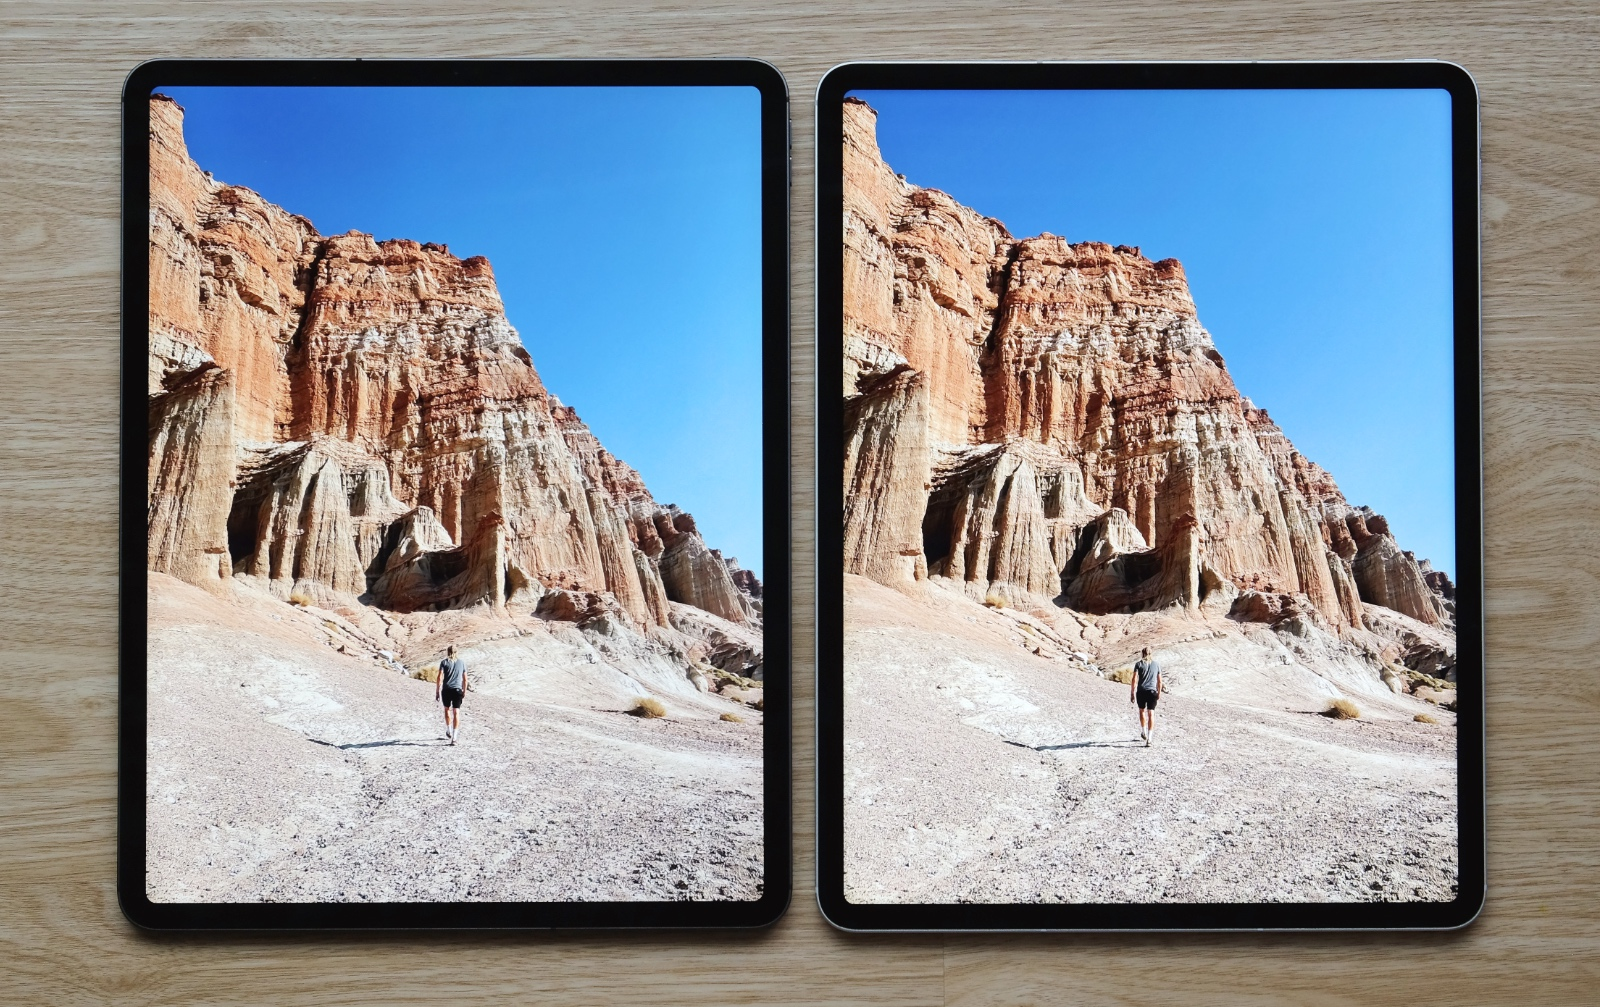 New iPad Pro on the right. In this image, pay attention to the canyon and see how it shows a greater range of colours.